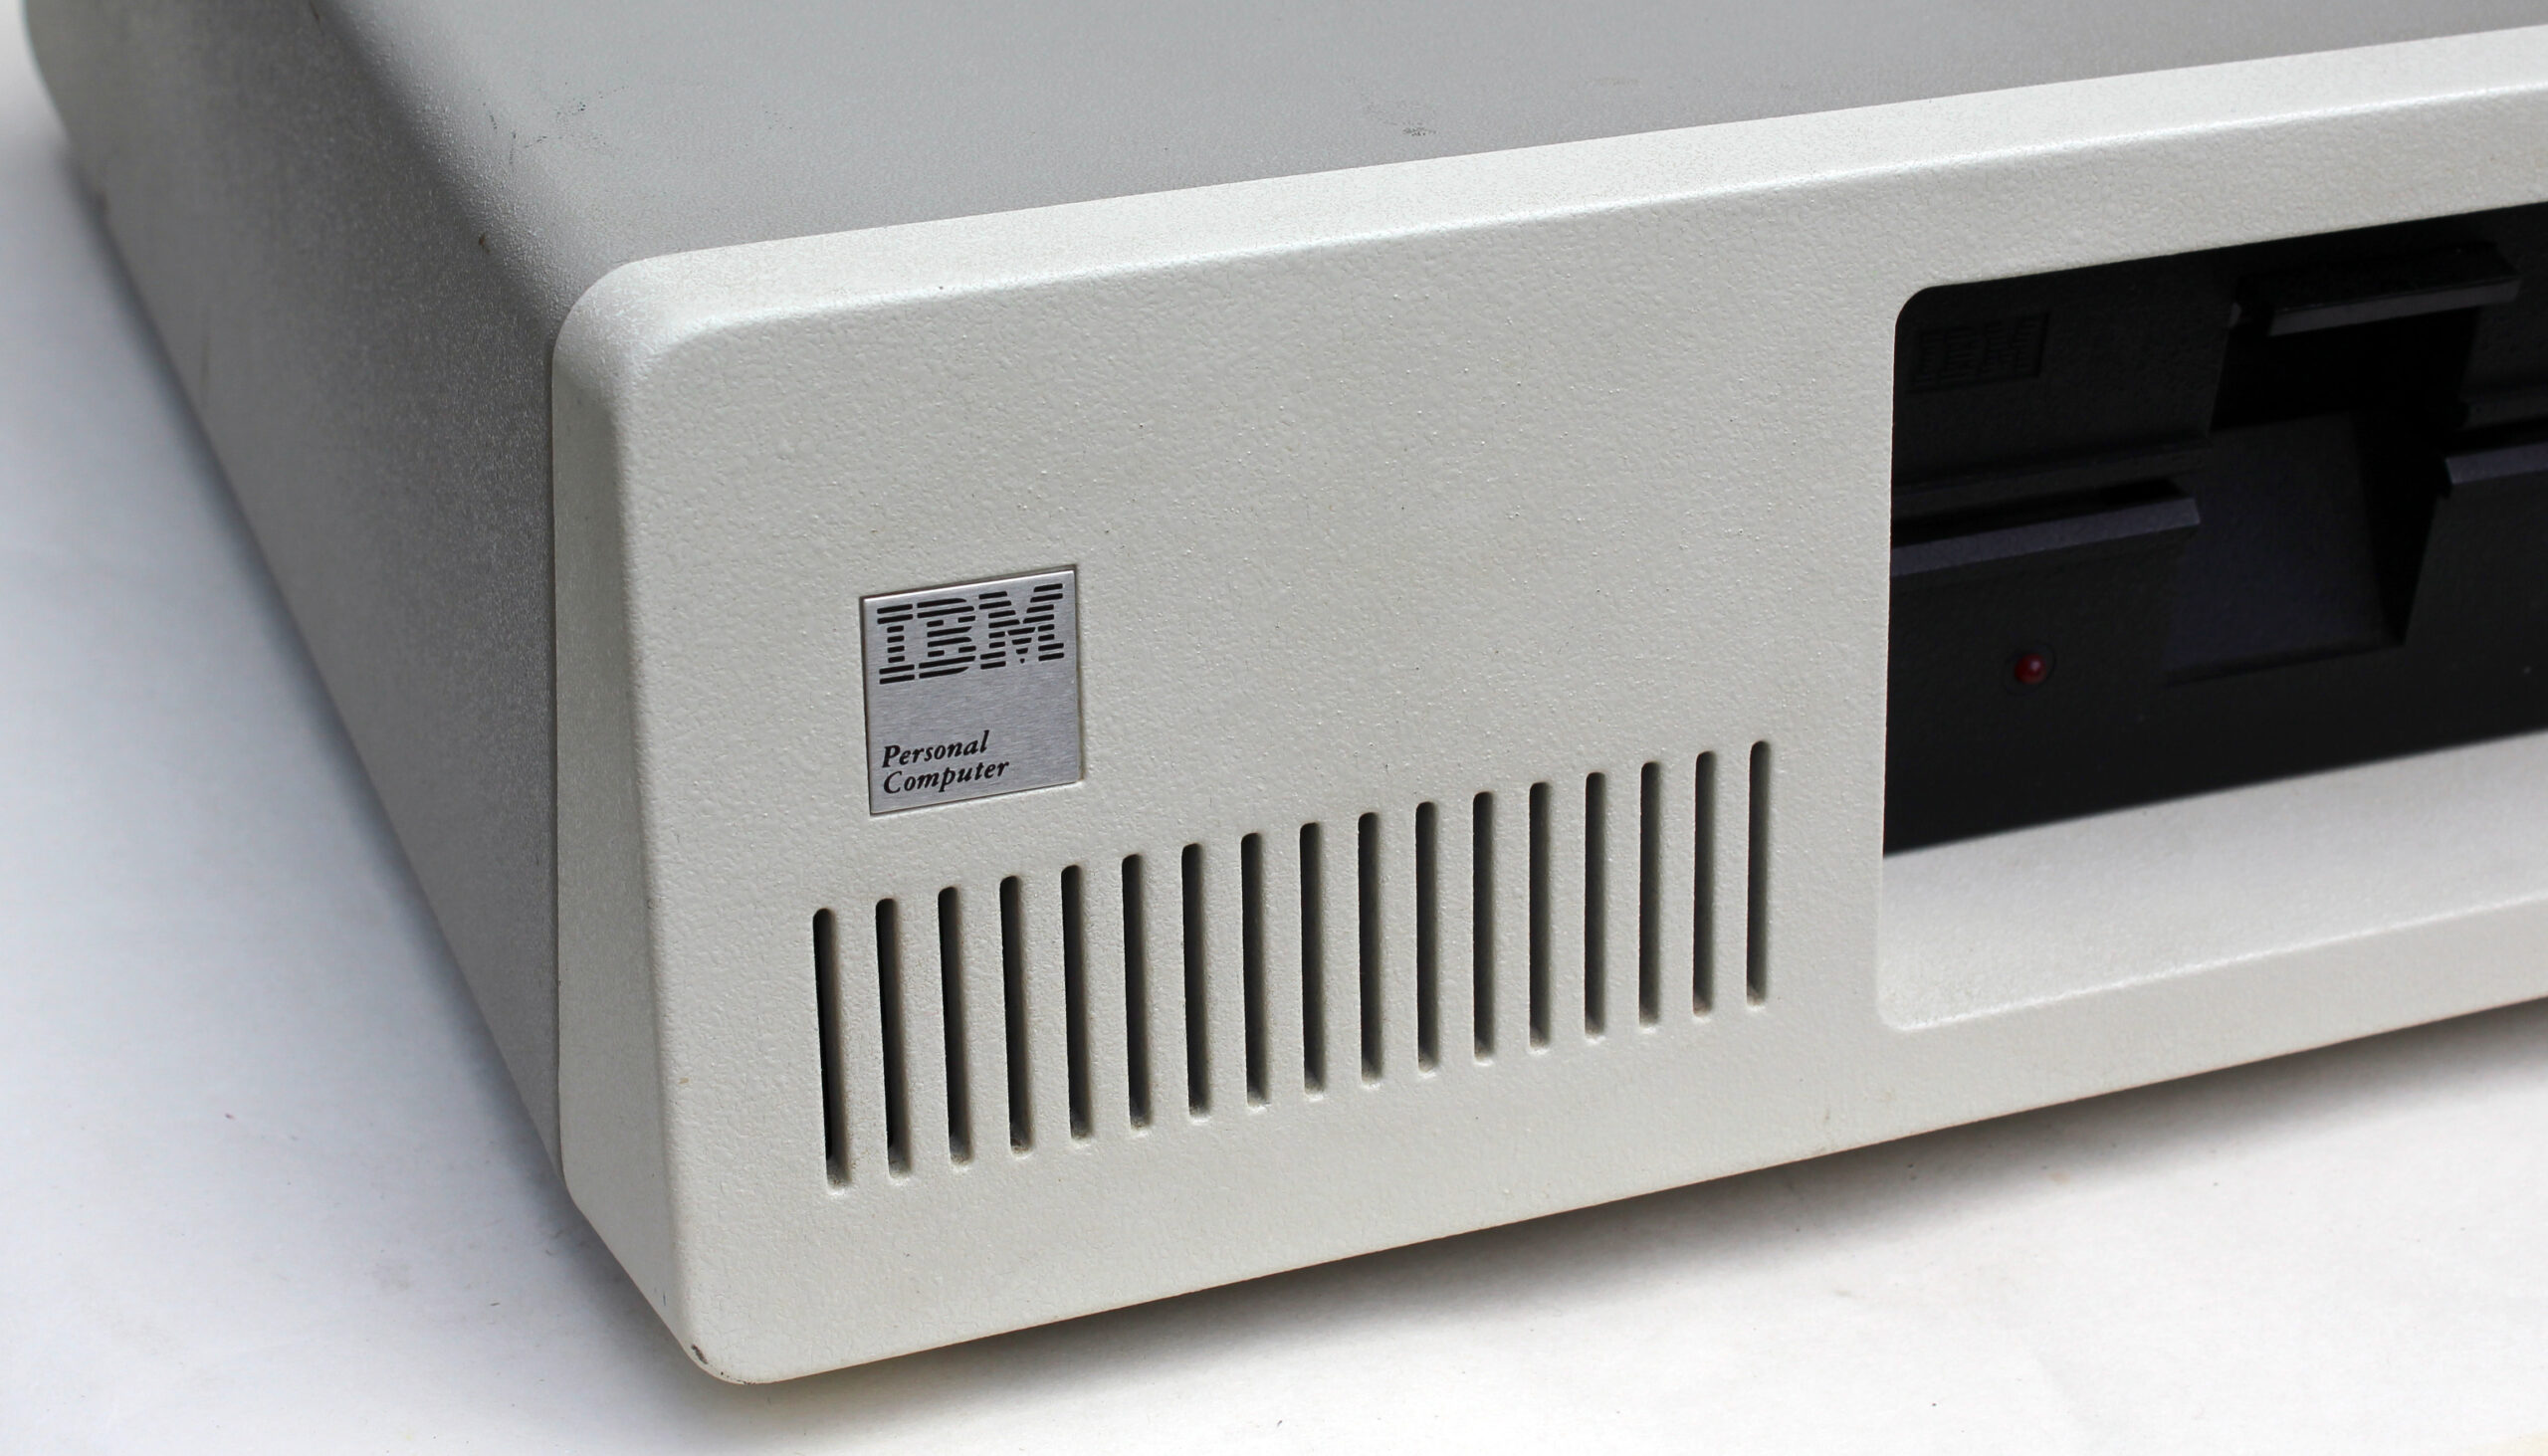 The IBM Personal Computer laid the foundation for the PCs we know and love today